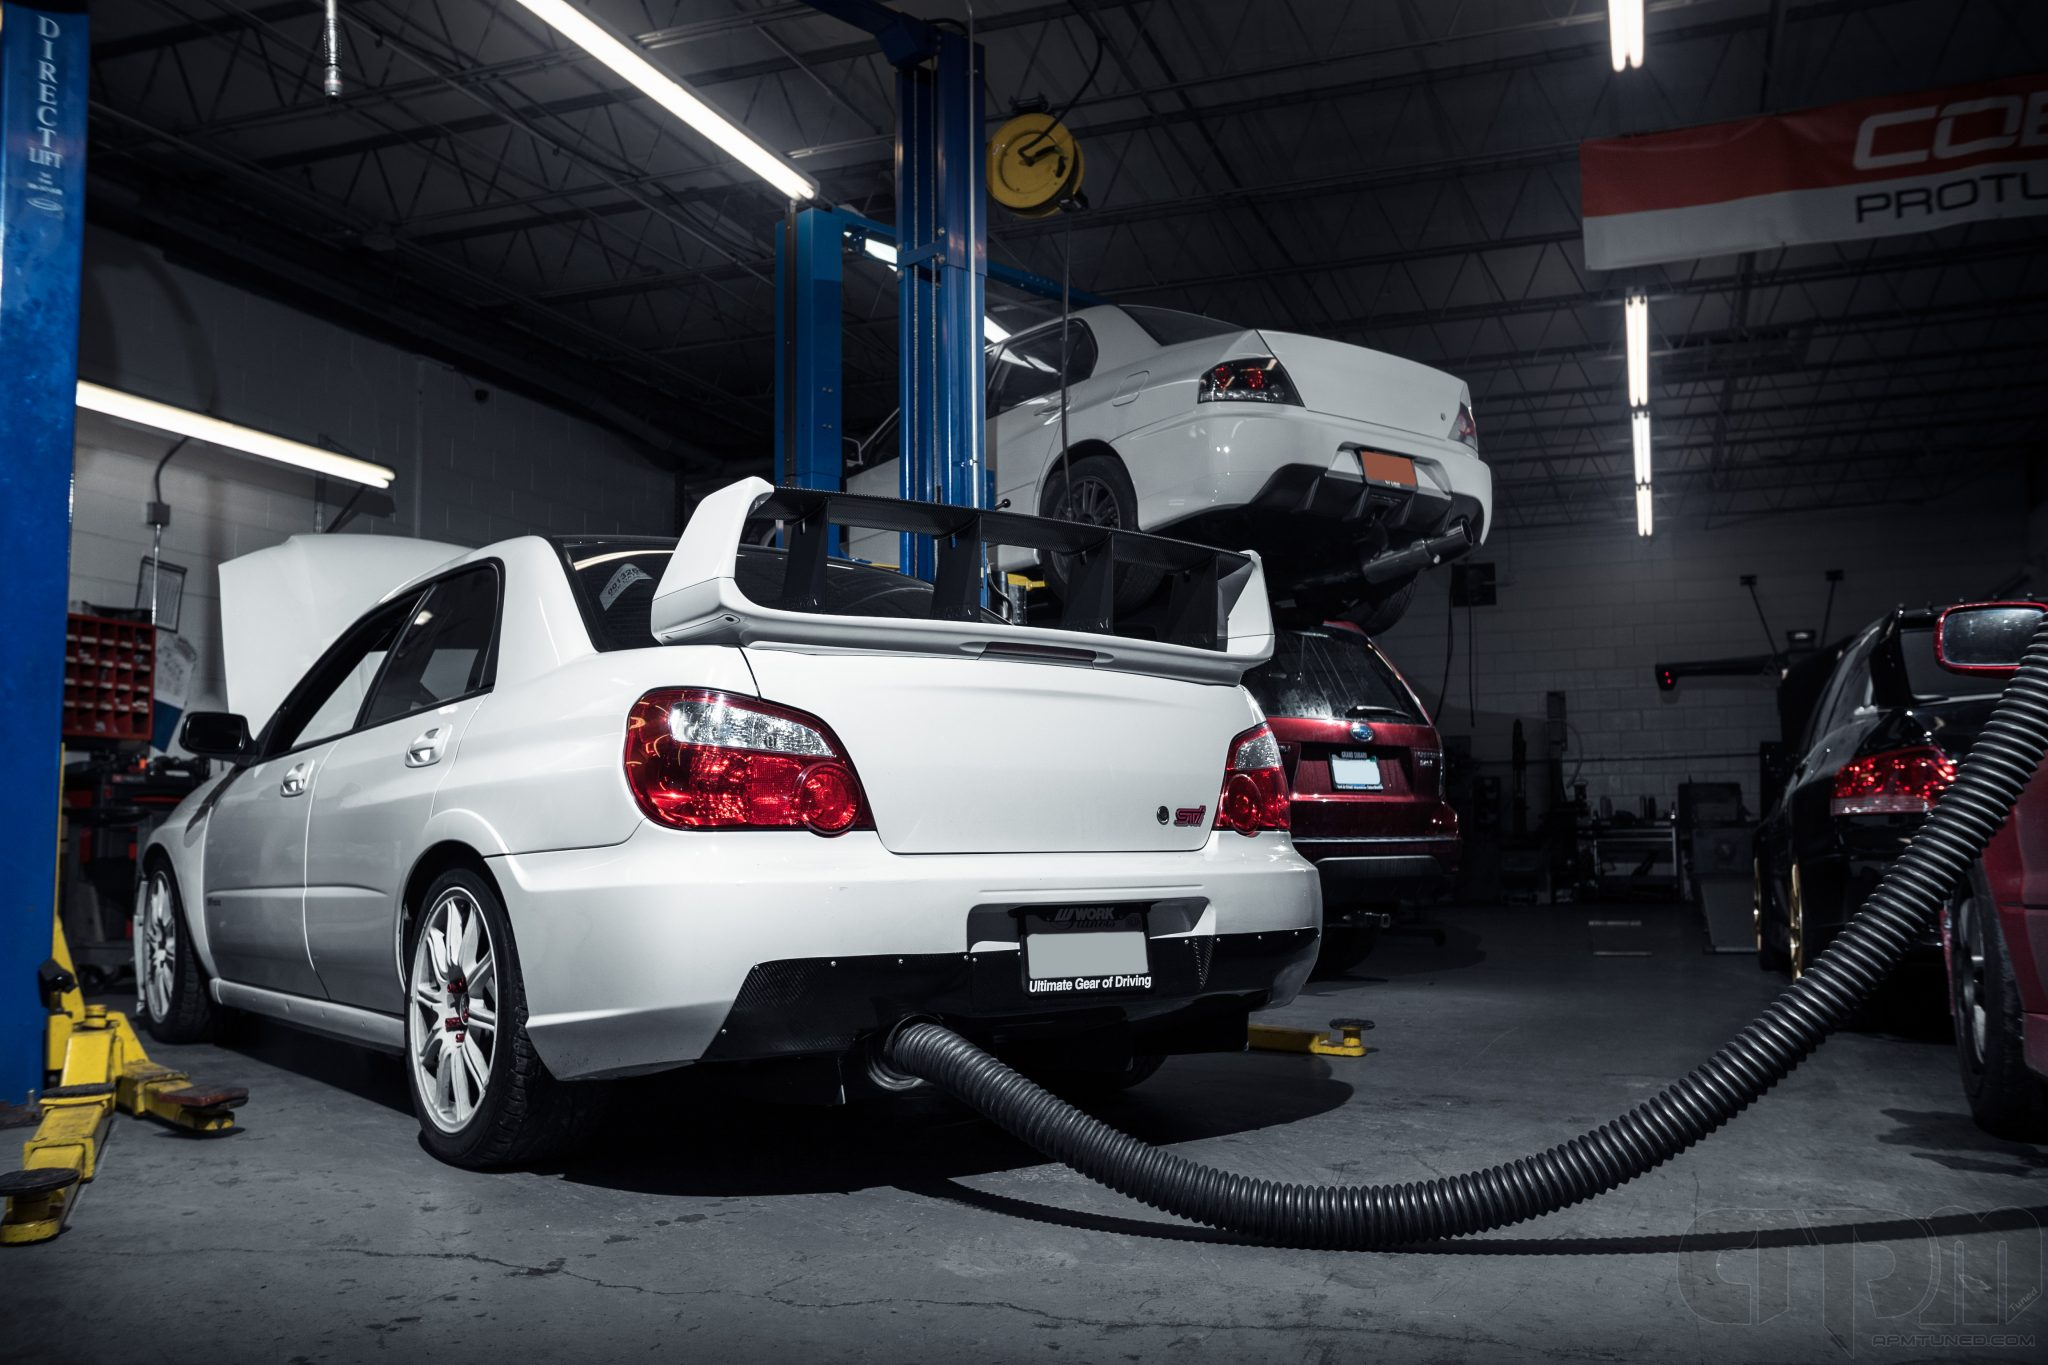 White Subaru STi getting tested inside of the shop, pipe attached to exhaust pipe to remove fumes